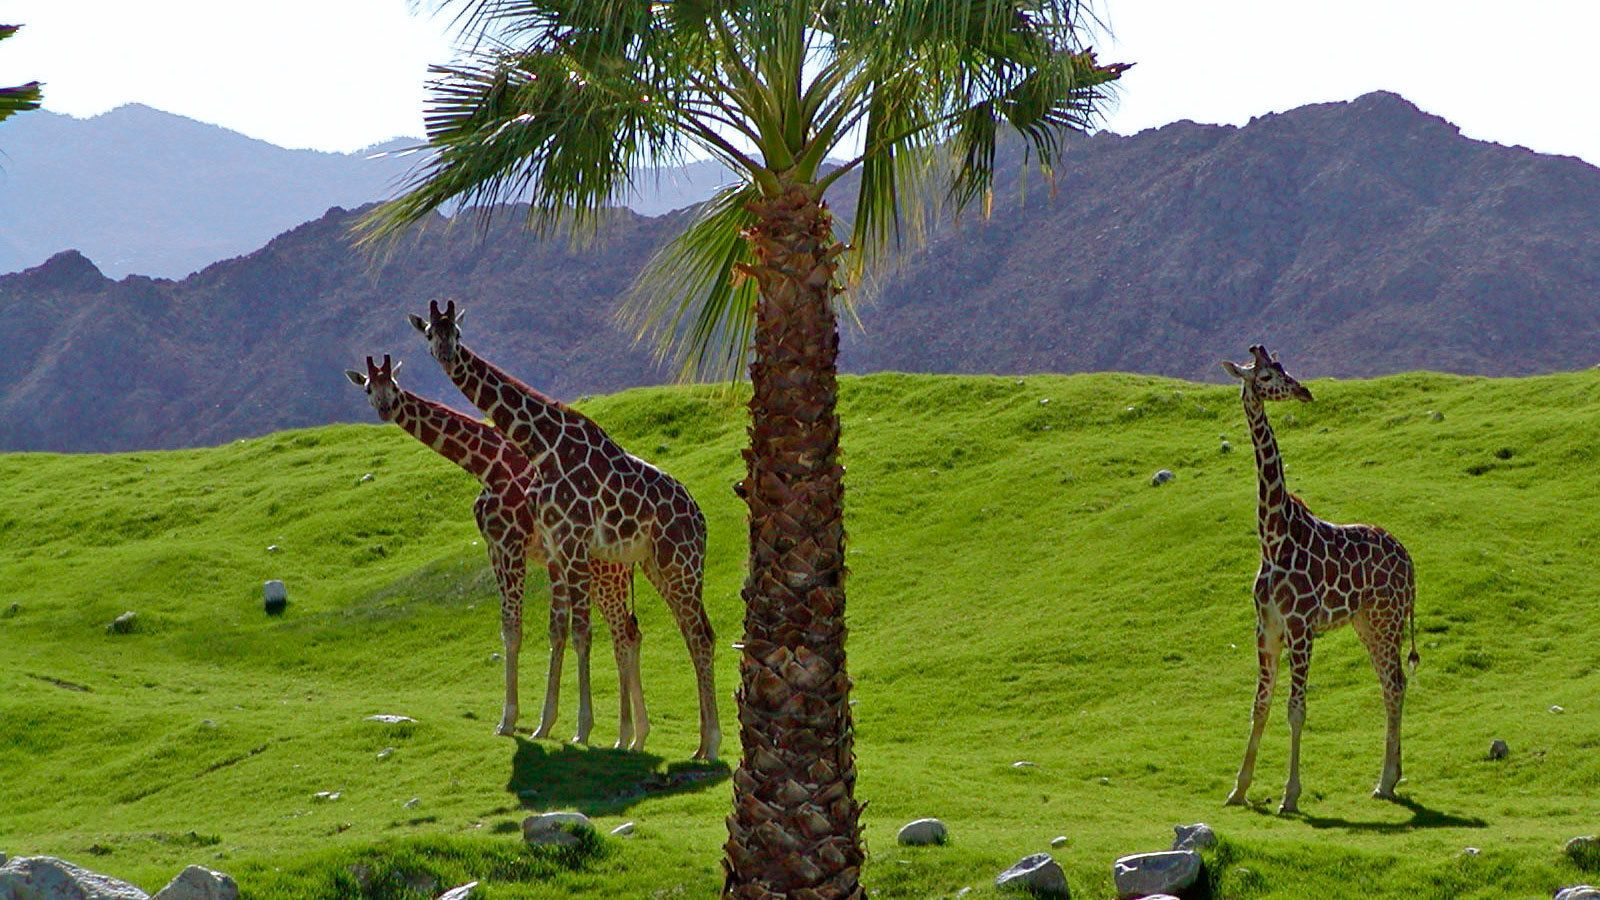 Group of giraffes at Living Desert Zoo and Gardens in Palm Springs